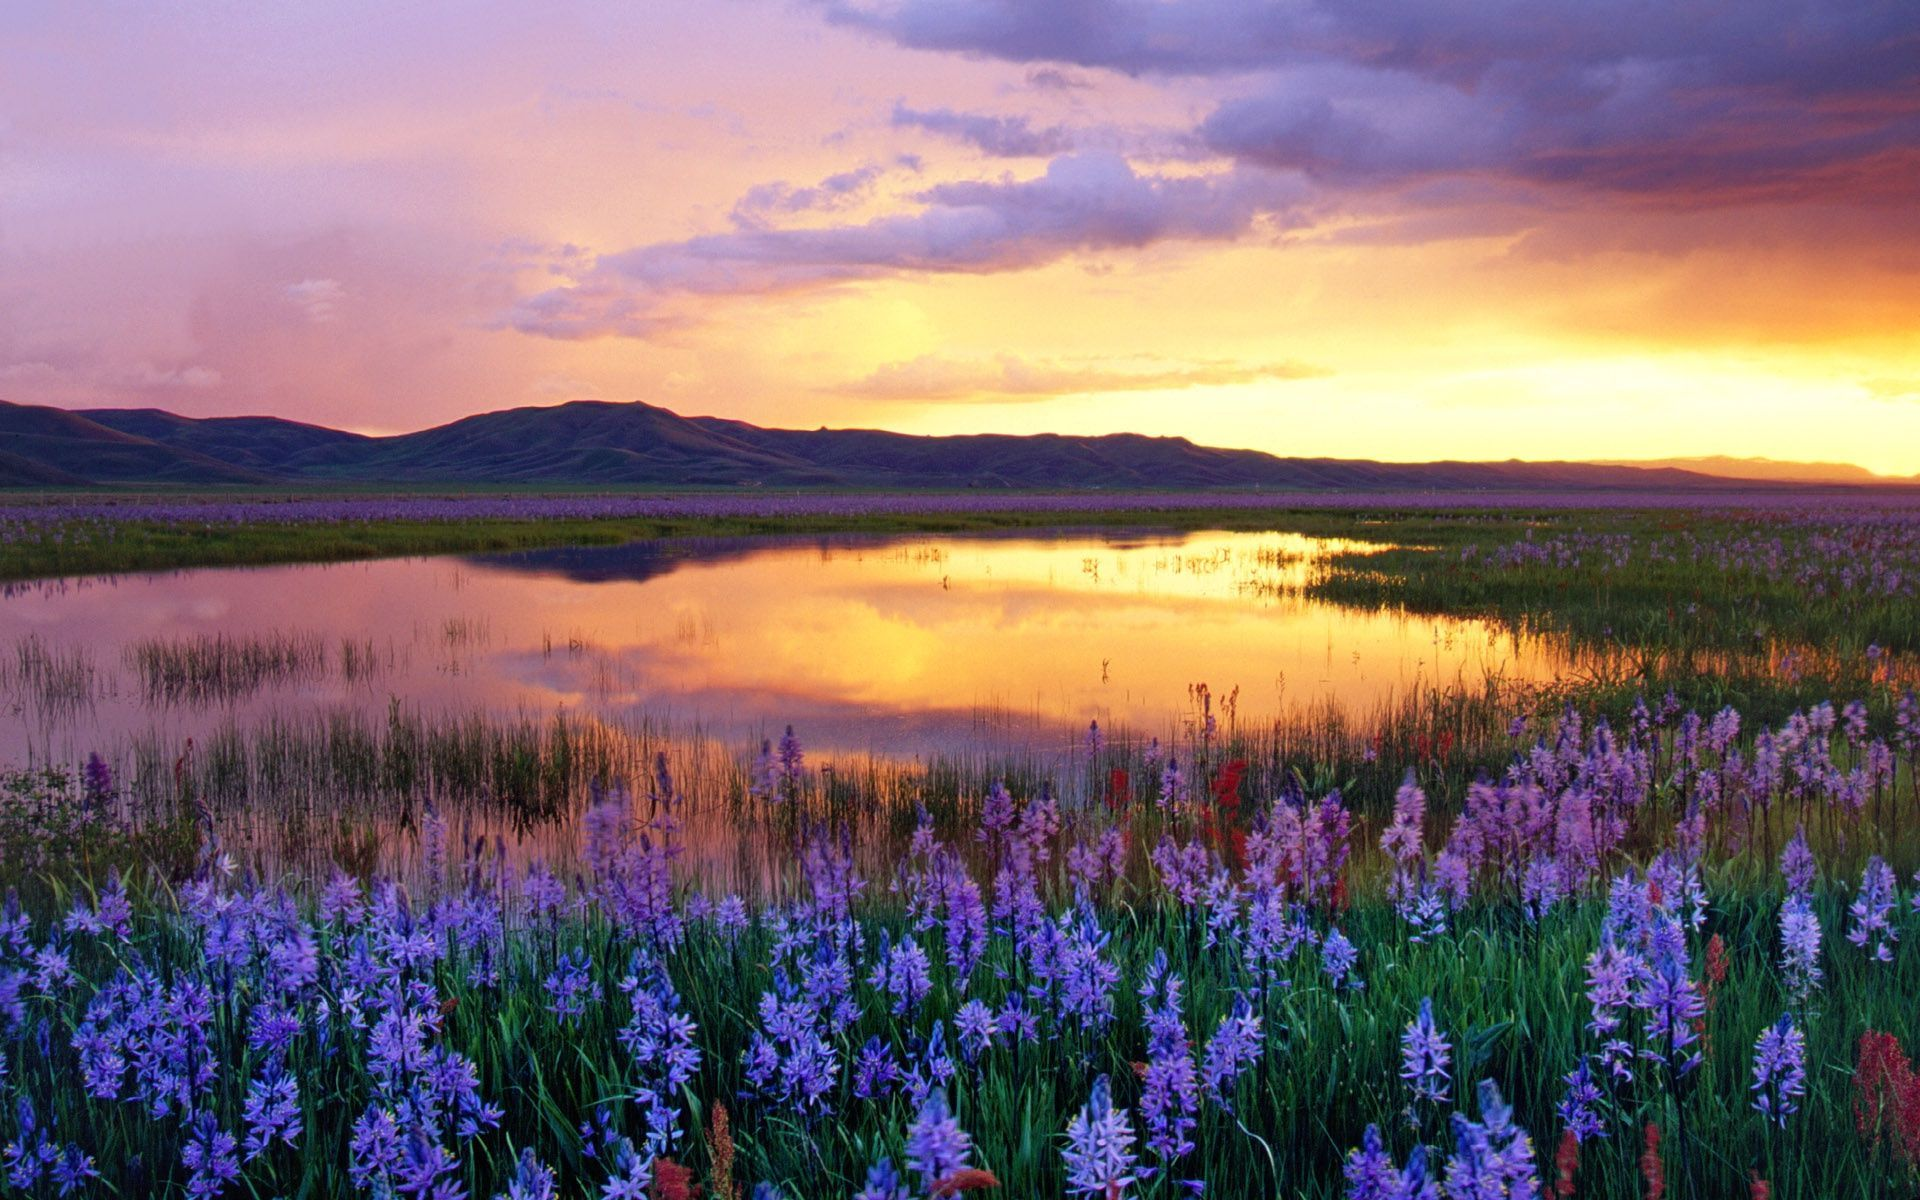 flower field sunset. High Resolution Images Of Nature | Flowers Field Sunset Wallpaper And Photo Download Flower A